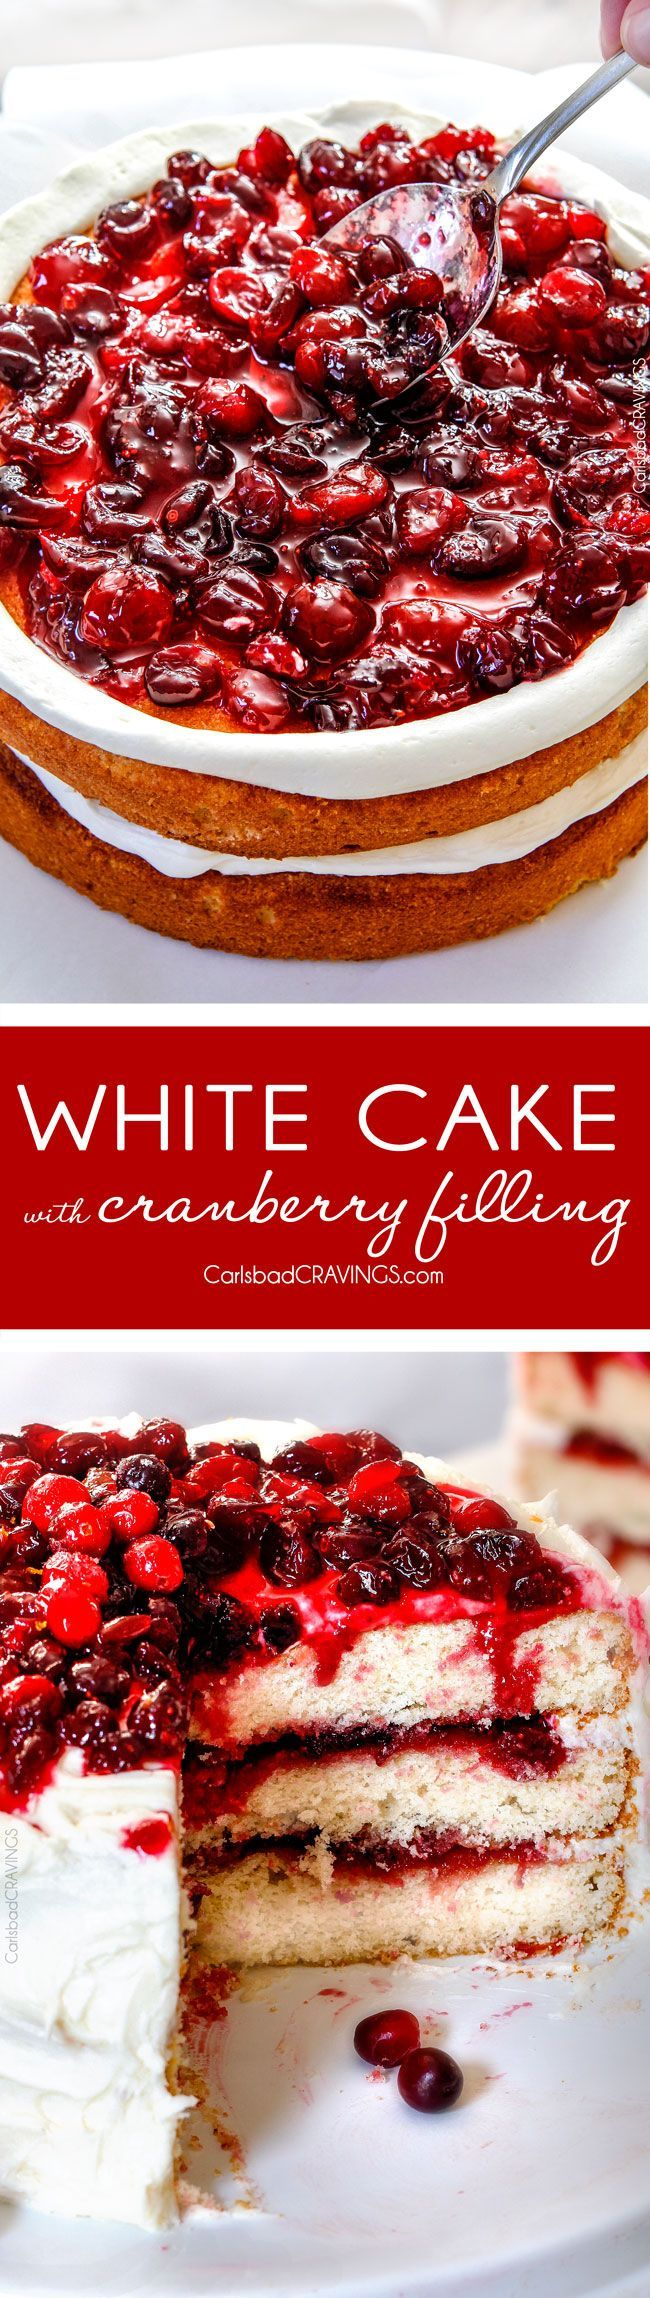 White Cake with Cranberry Filling and Buttercream Frosting – everyone always asks me for this recipe!  The moist, bakery style white cake is the BEST ever and the sweet and tangy cranberry filling is melt in your mouth delicious and Christmas festive!   via /carlsbadcraving/